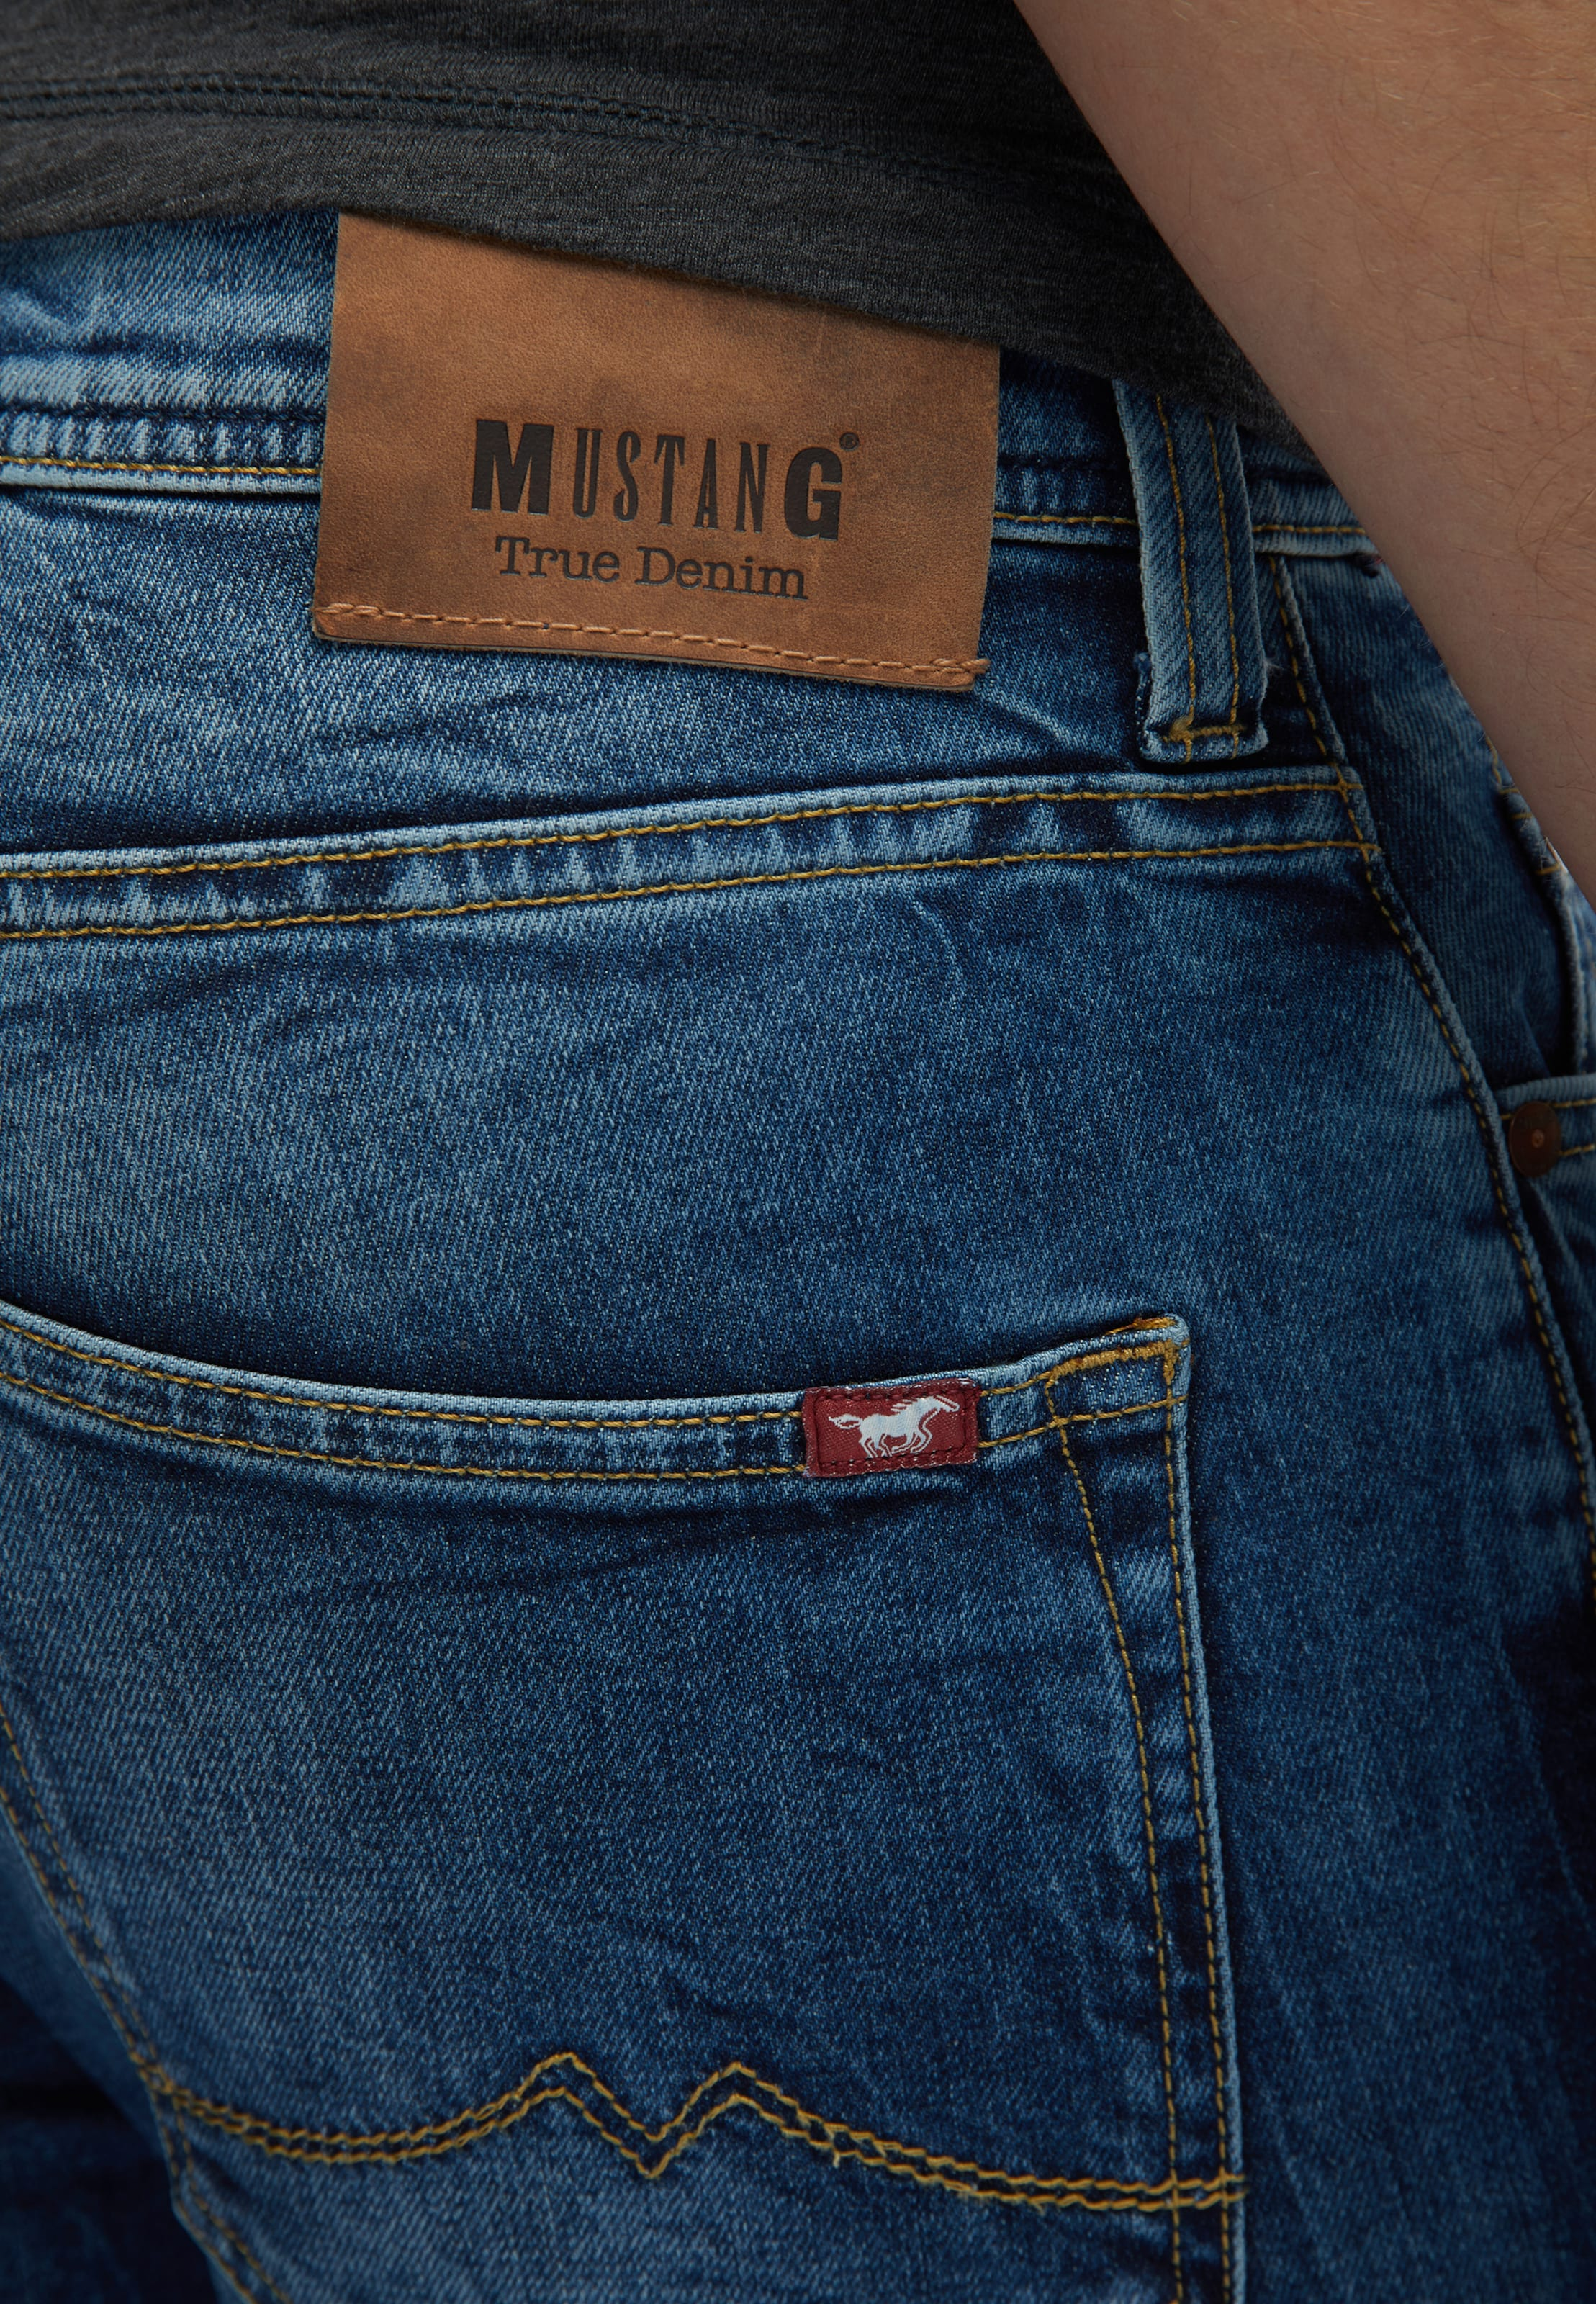 In Blue Mustang Hose Denim 'vegas' Ov8nmN0w